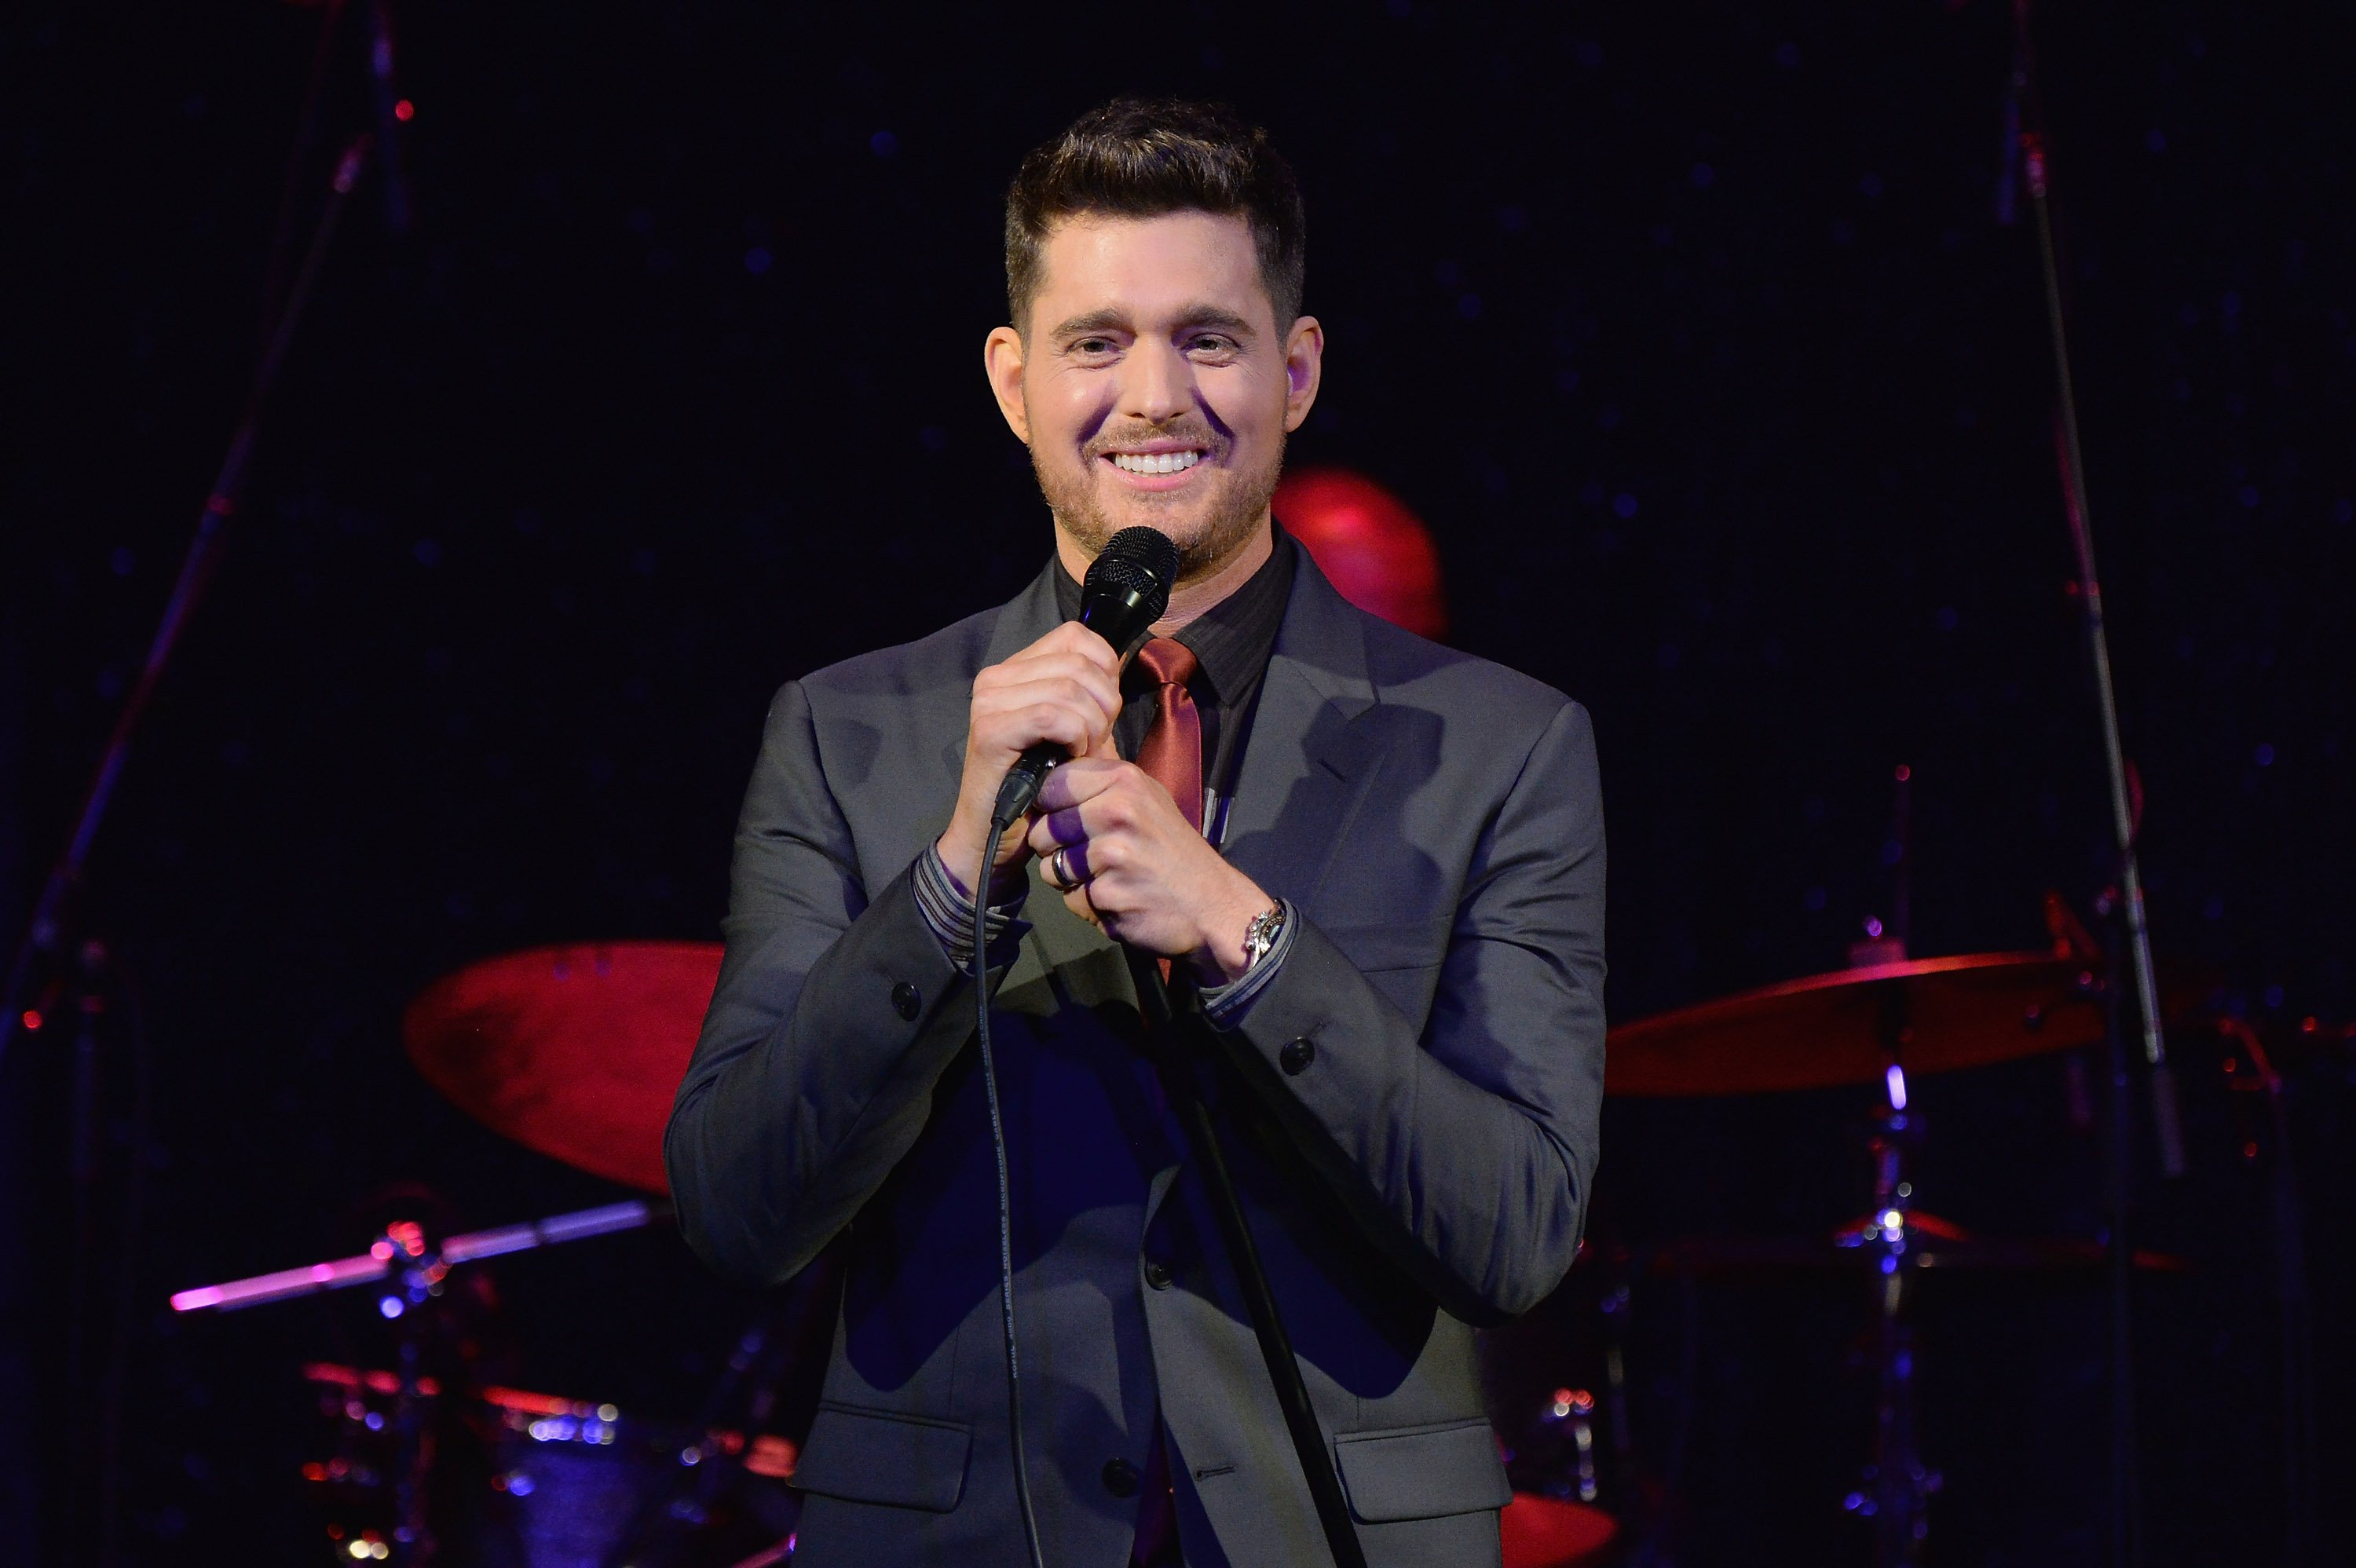 Michael Buble performs at his By Invitation Fragrance launch on August 24, 2016, in New York City. | Source: Getty Images.